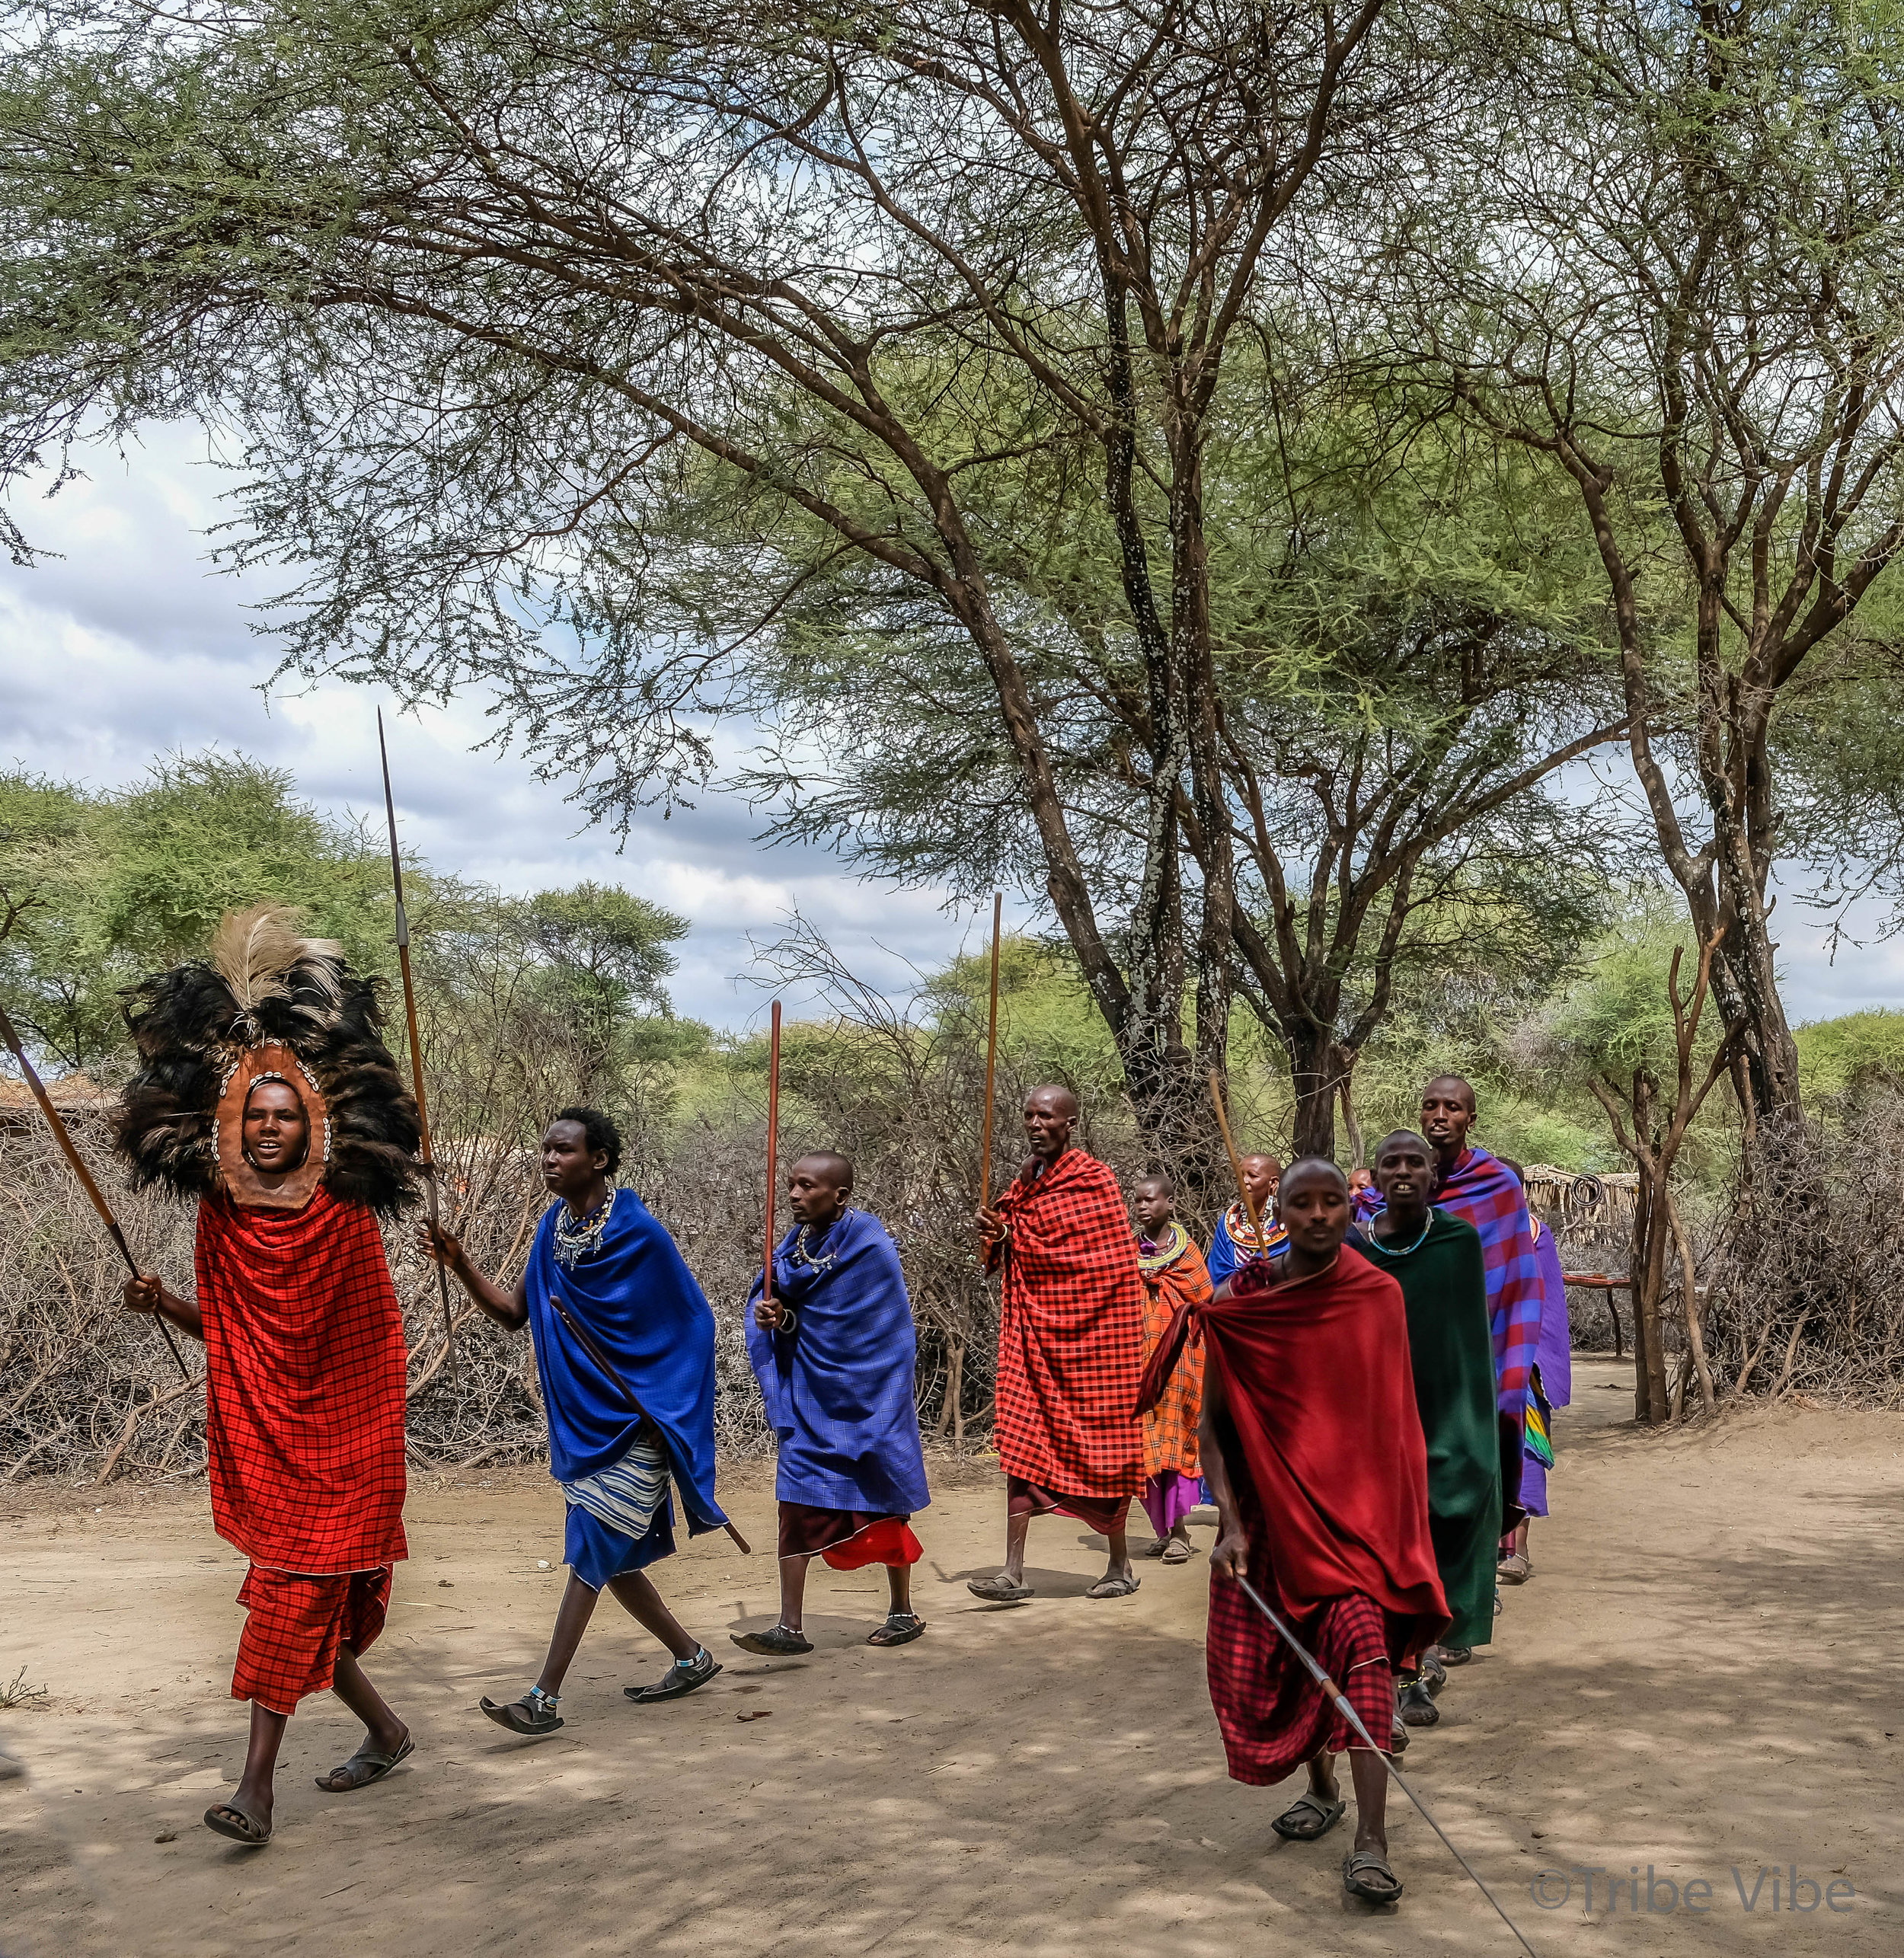 Being greeted with a traditional Masai welcome song and dance